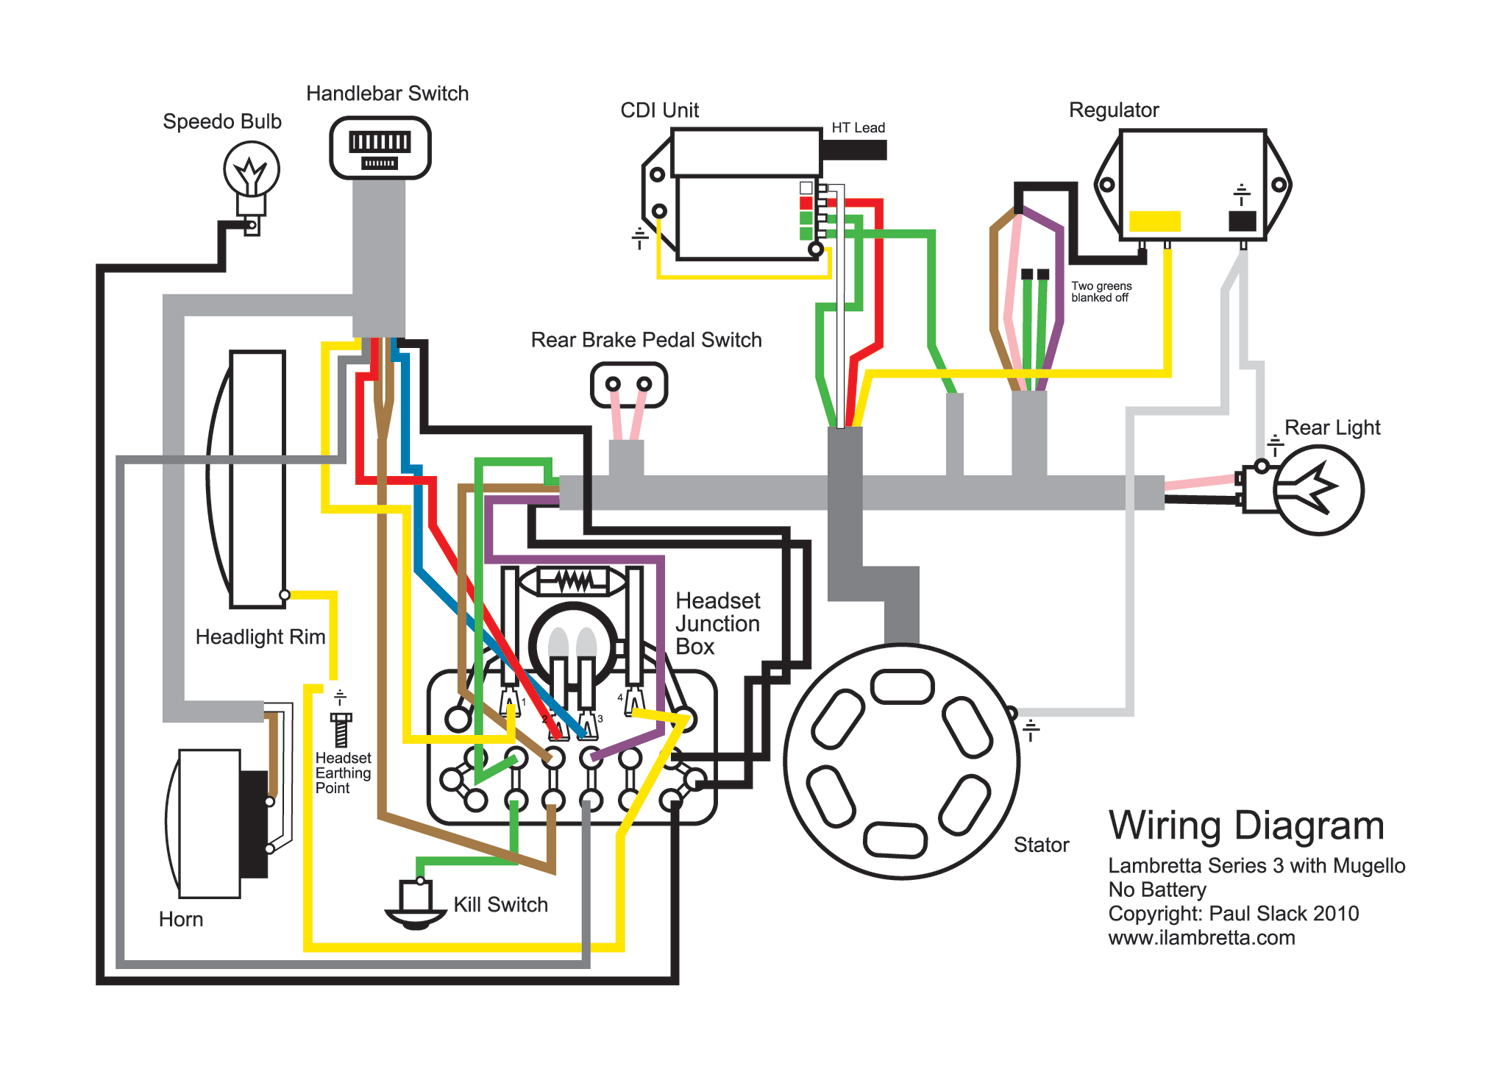 Lambretta Restoration Wiring Diagram For Mugello 12 Volt Upgrade Phone Line Wire